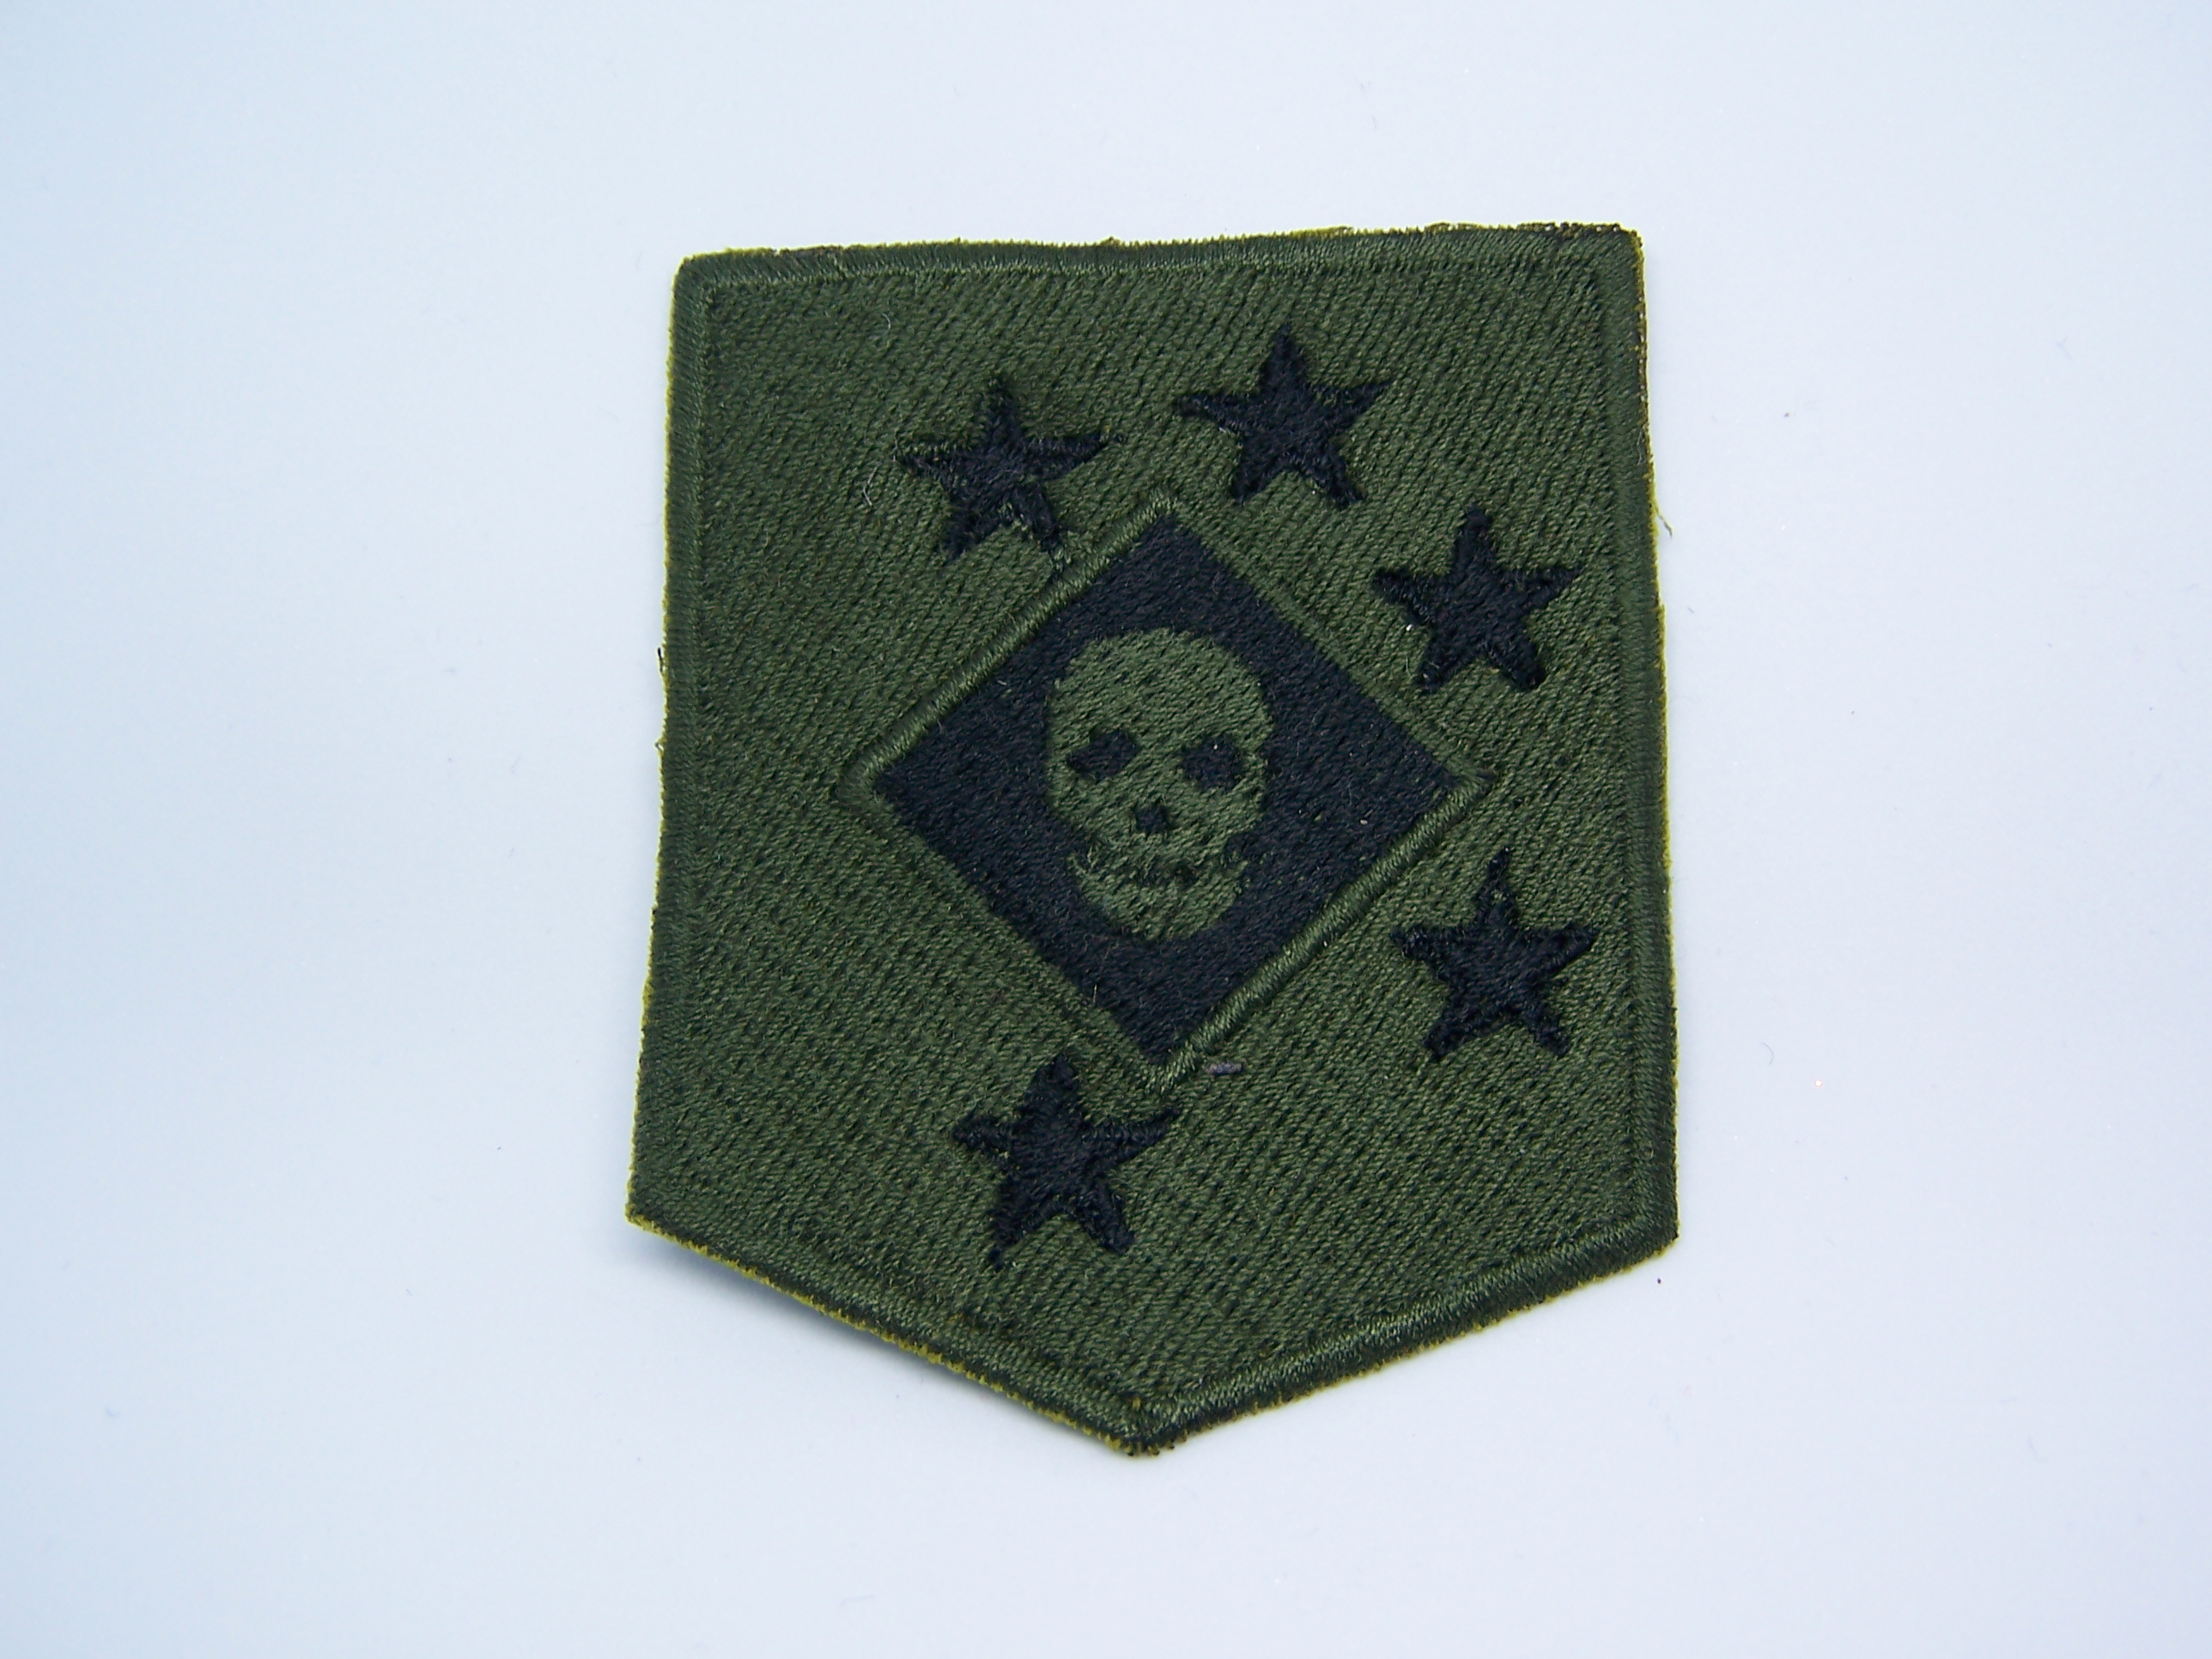 U.S. Marines special forces raiders - bojová les